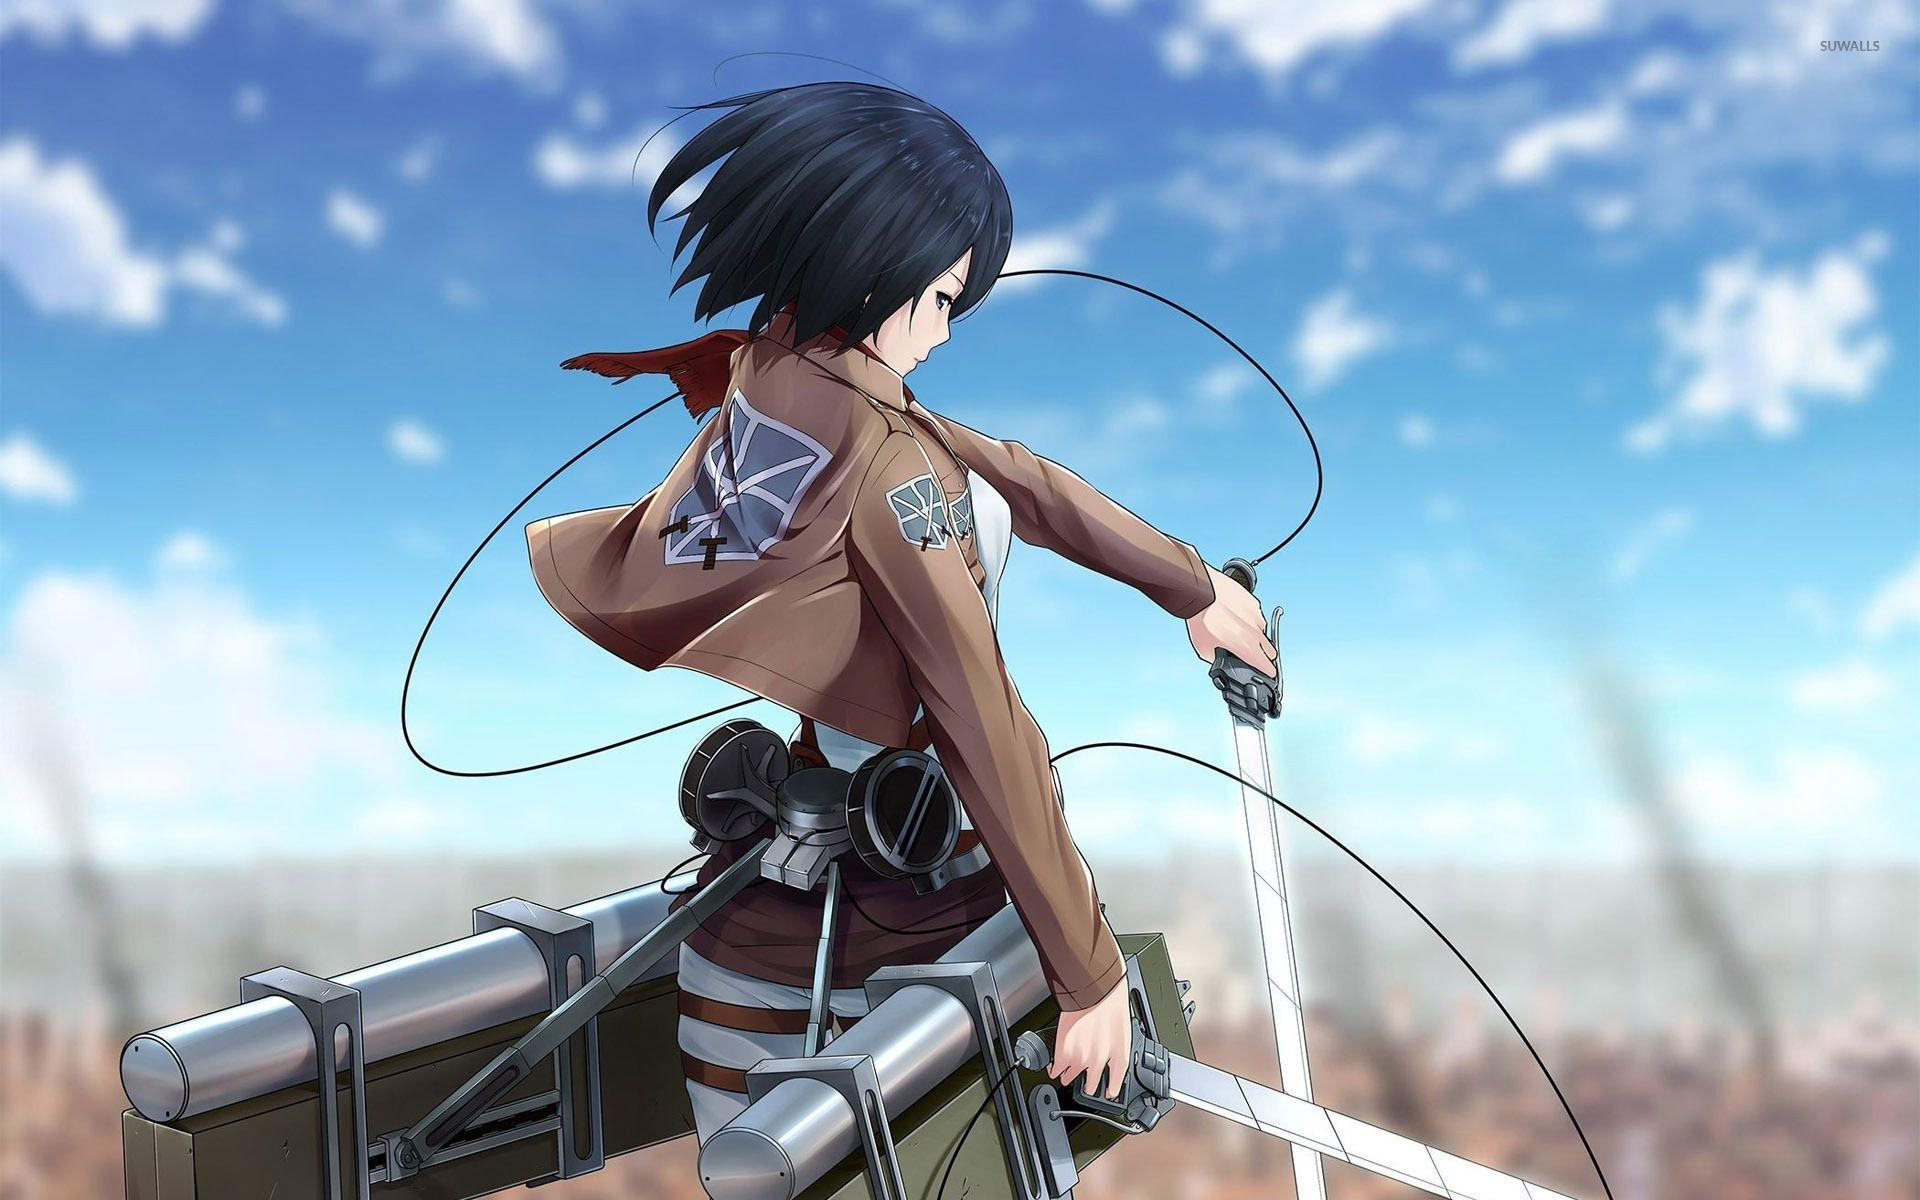 Attack on titan mikasa ackerman wallpapers wallpaper cave mikasa ackerman attack on titan wallpaper anime wallpapers voltagebd Image collections